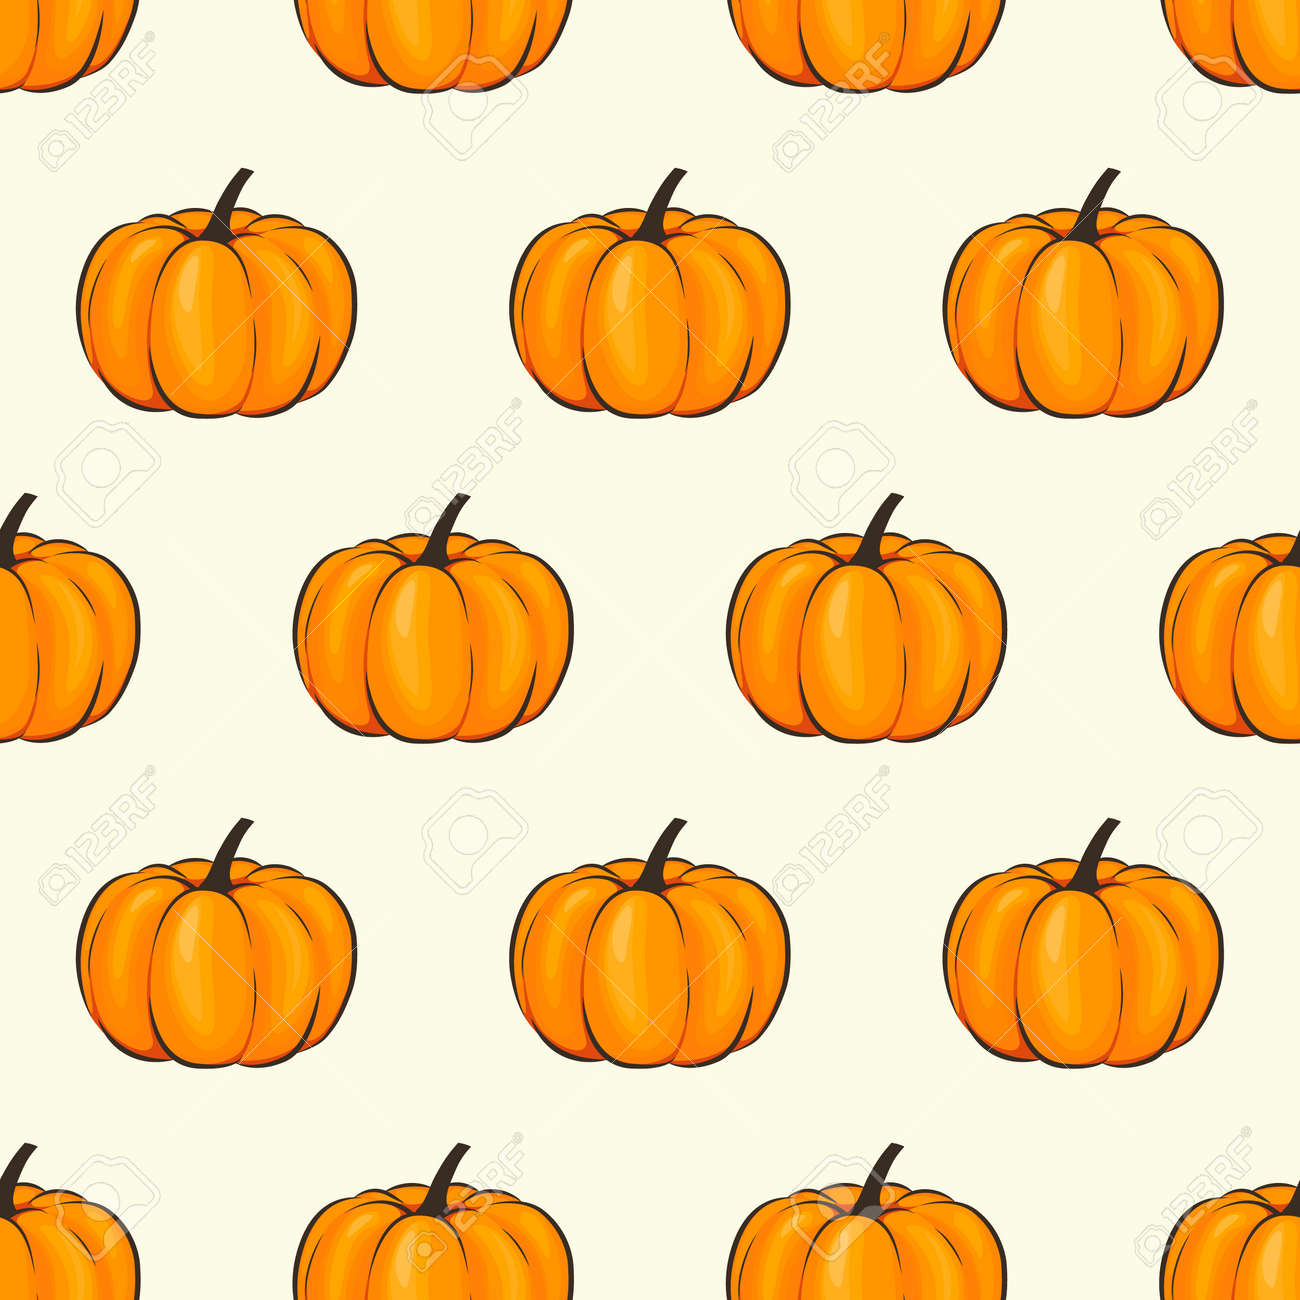 Pumpkin Isolated Seamless Wallpaper Pattern Wrap Cartoon Style Royalty Free Cliparts Vectors And Stock Illustration Image 86815734